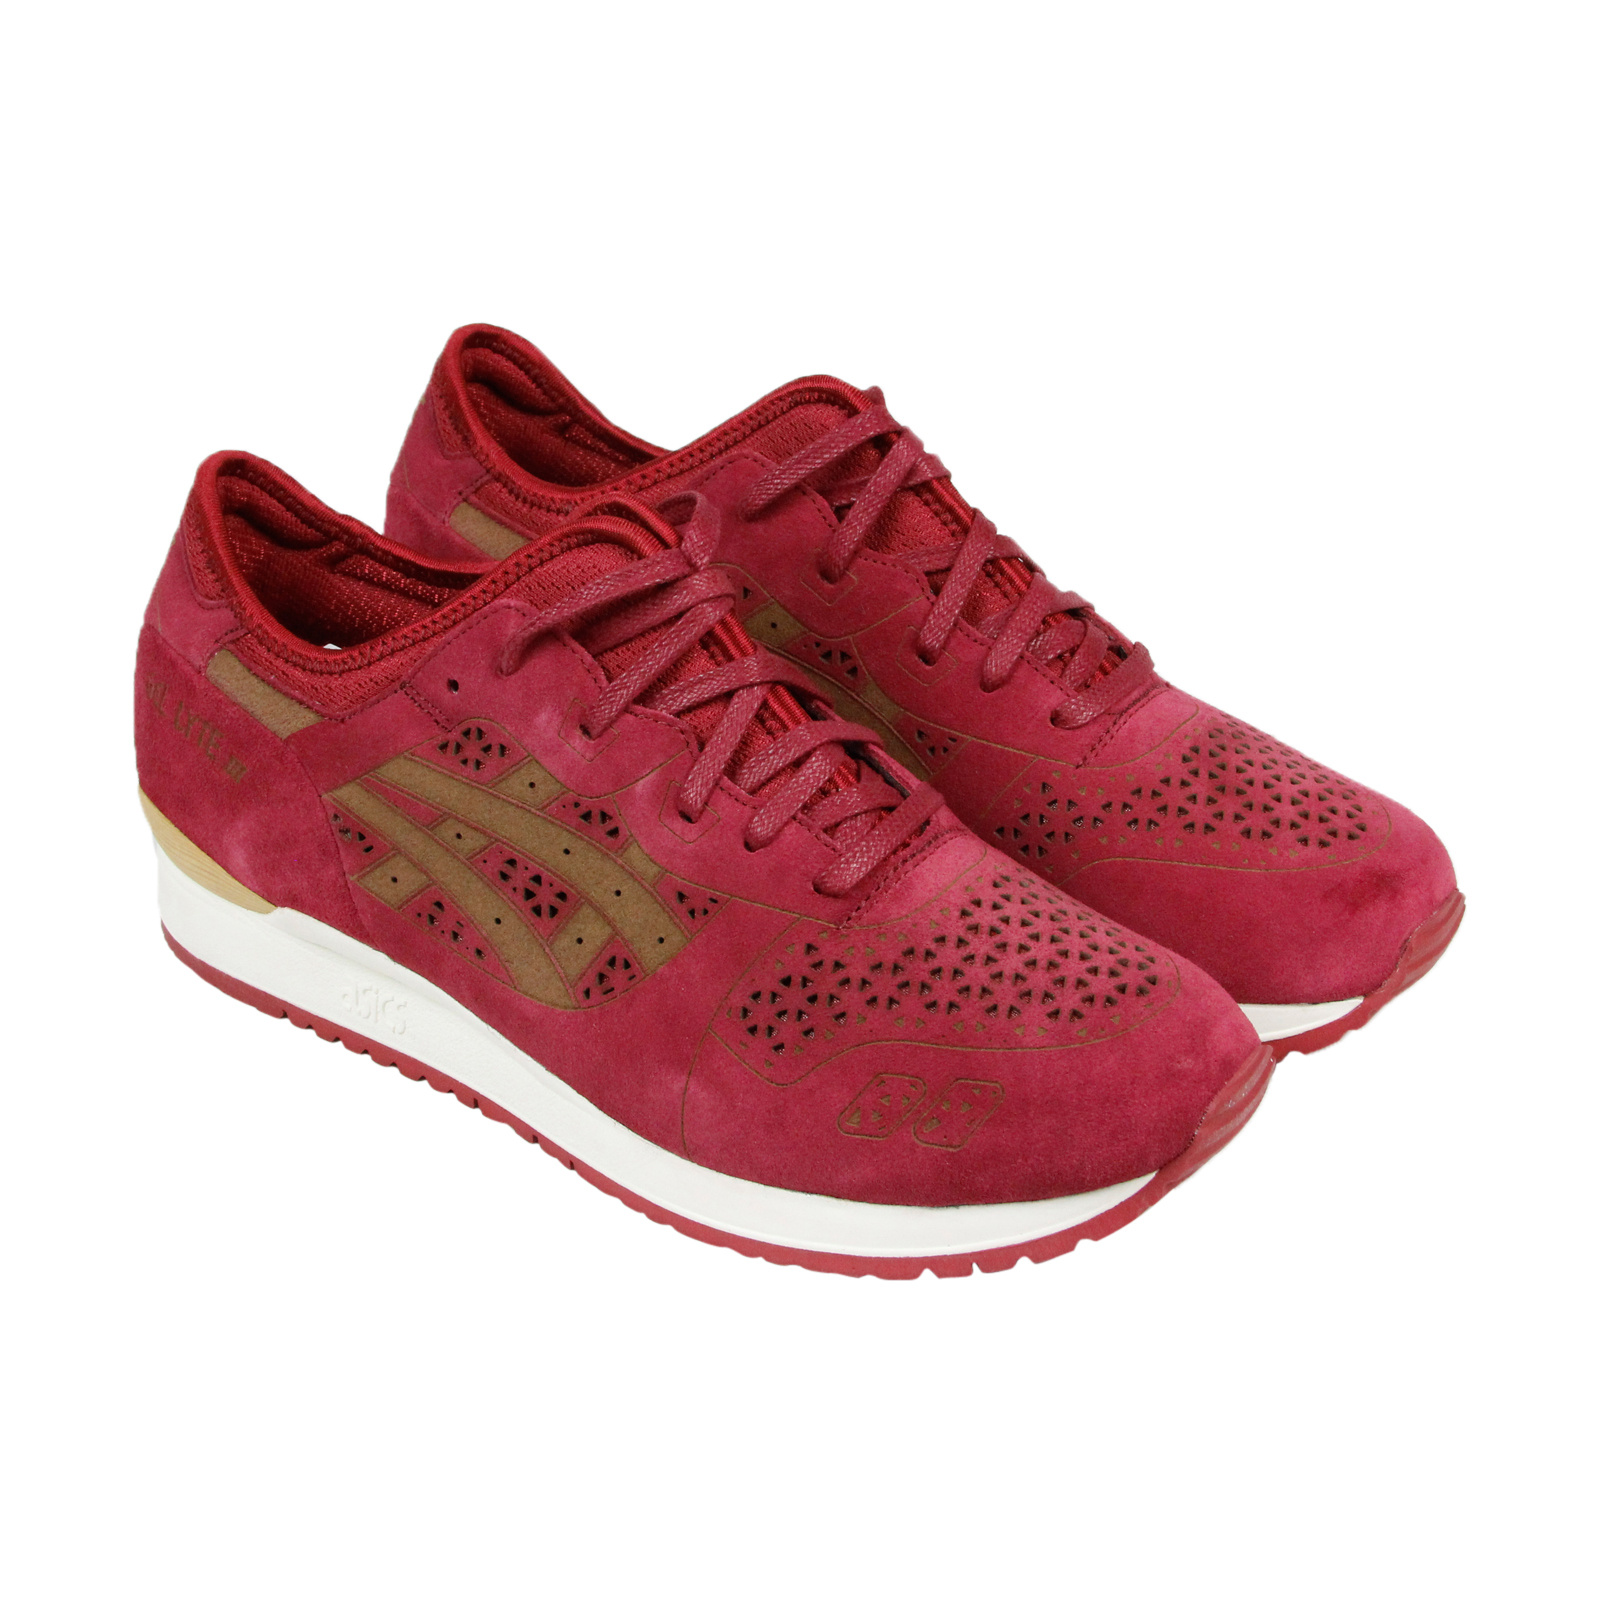 Asics Men`s Gel-Dedicate 4 Tennis Shoes Flash Yellow and ... |Maroon And Yellow Asics Shoes